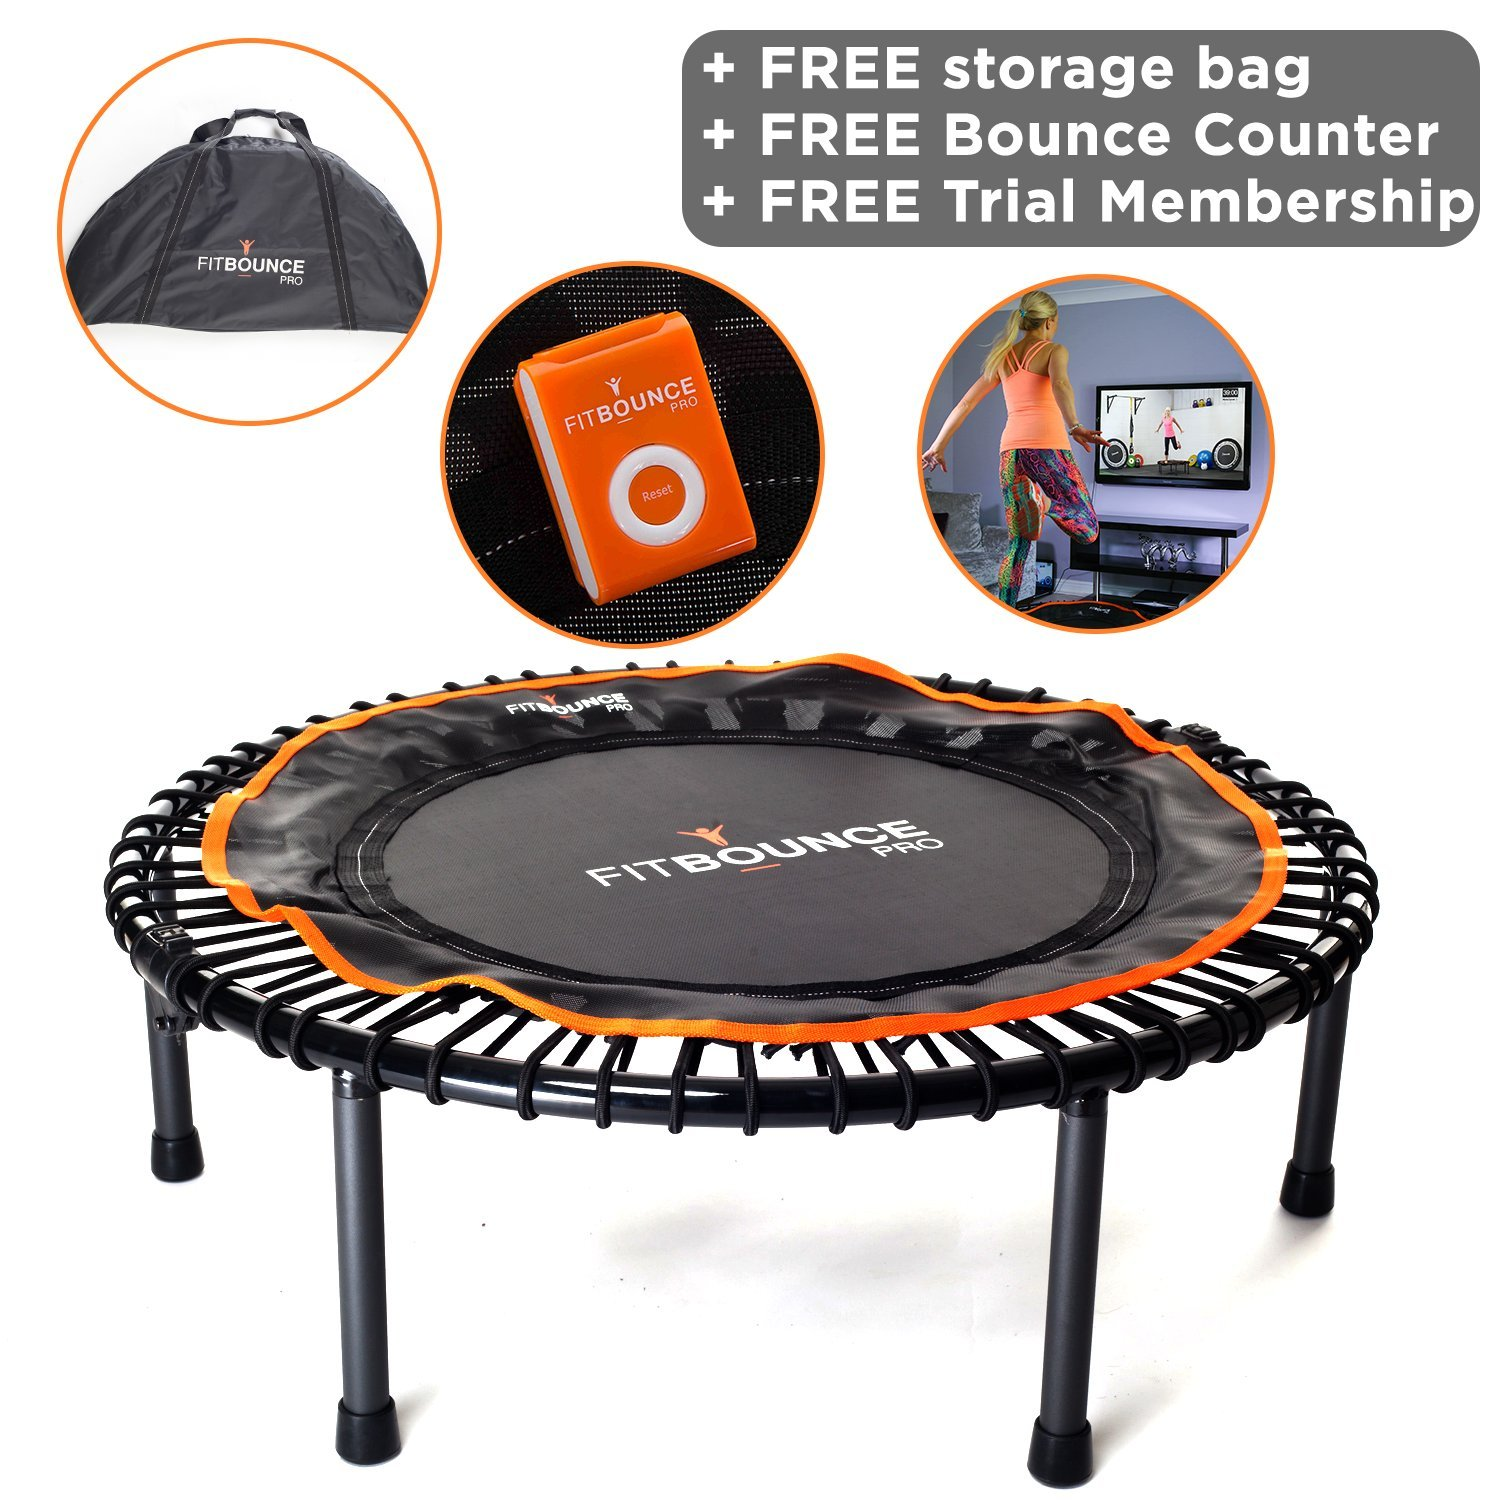 MXL MaXimus Life FIT Bounce PRO II Half Folding Very Quiet Beautifully Engineered Bungee Sprung Mini Trampoline Rebounder with DVD, Storage Bag & Bounce Counter! Free 3 Months Video Membership!